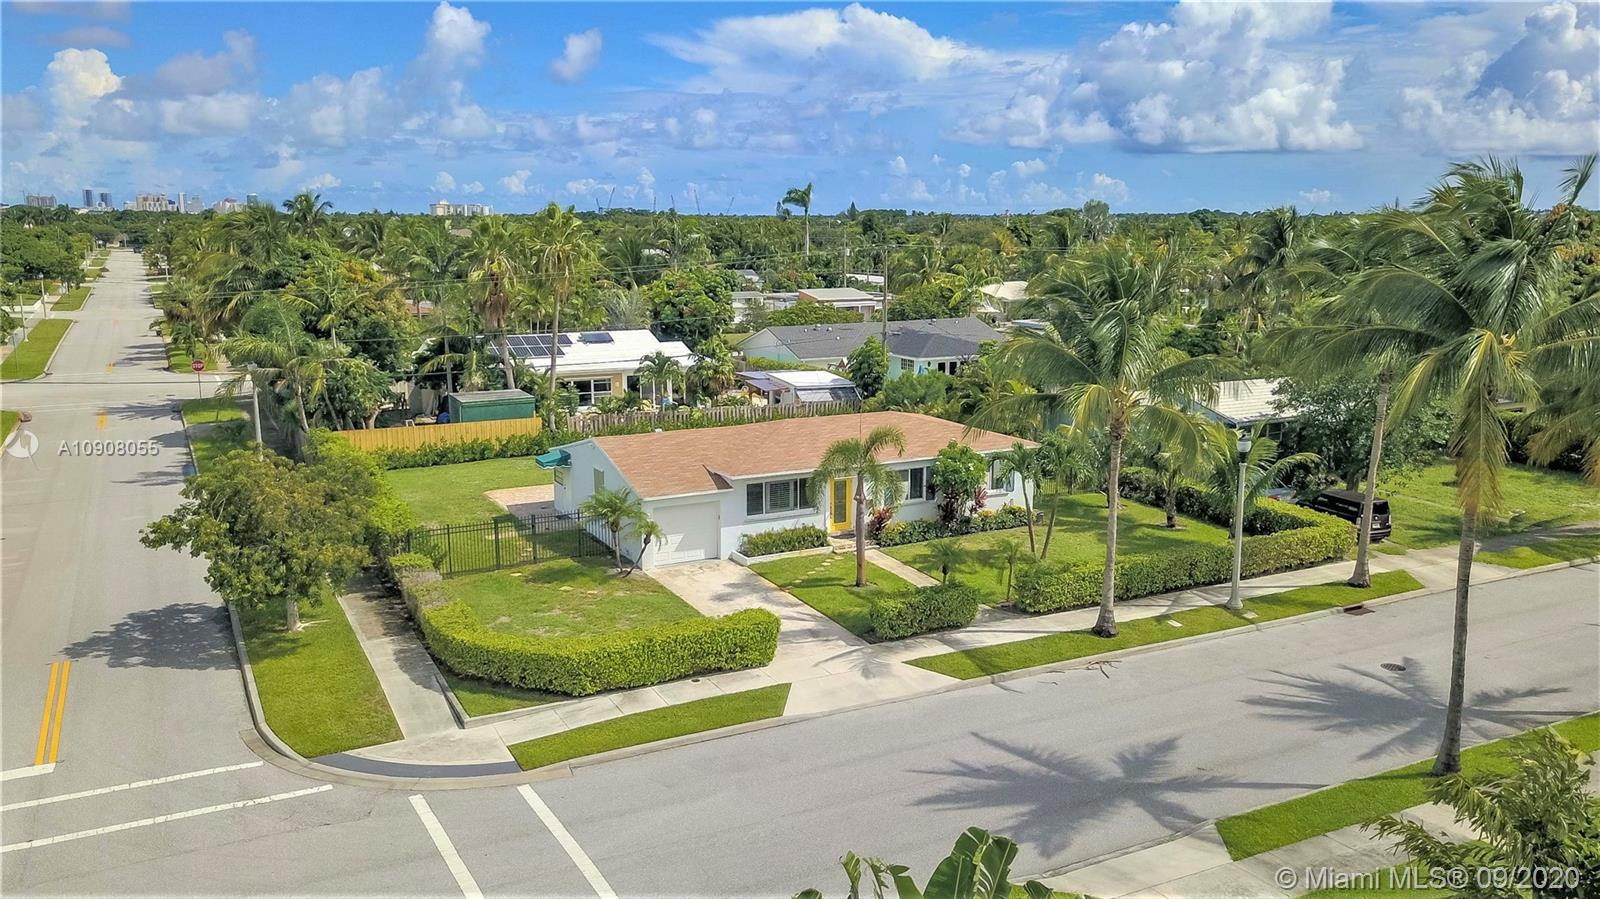 Come and view this cozy home on the corner lot in desirable Palm Beach Southside area, a few blocks